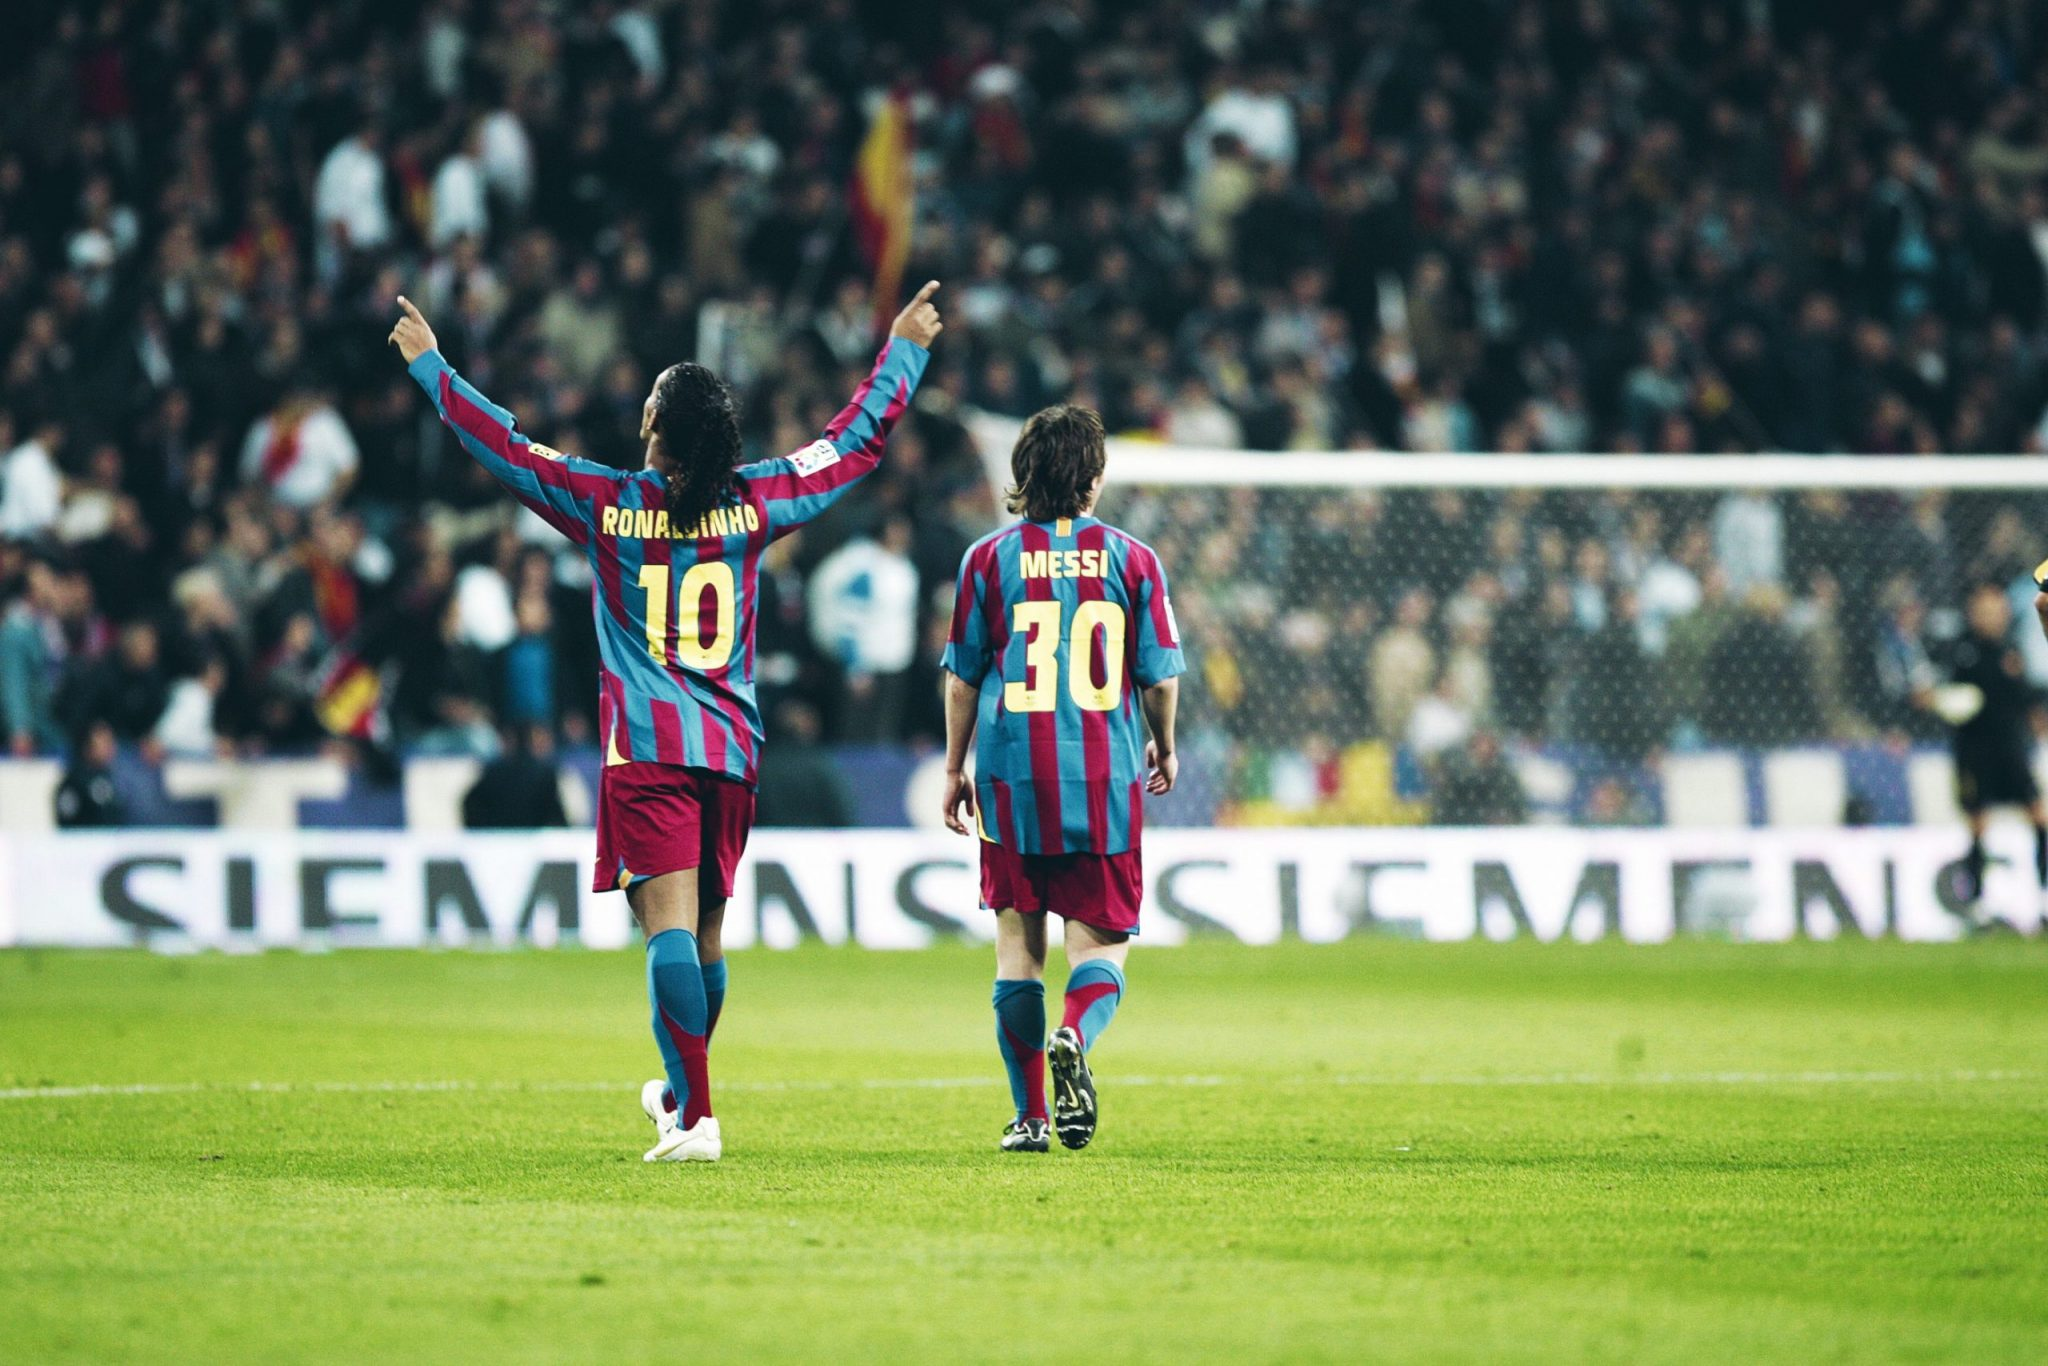 psg news-ronaldinho and messi in blue red barcelona jersey